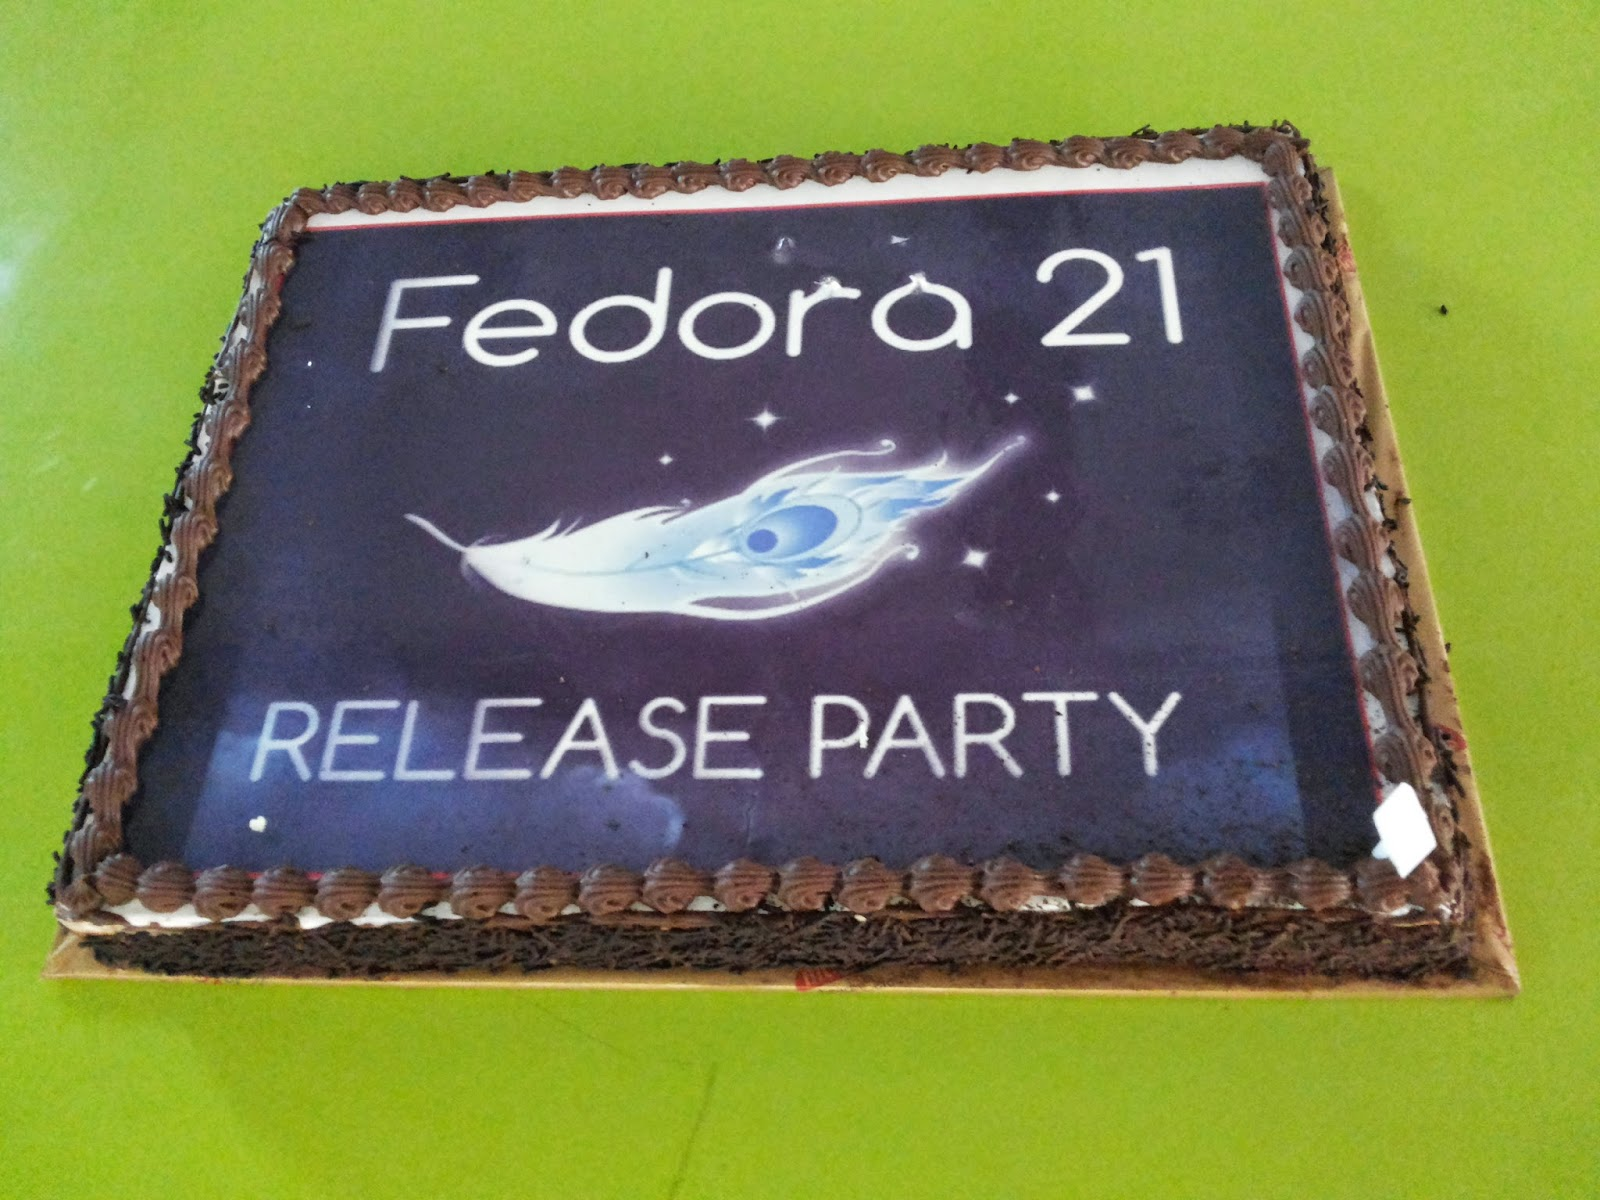 Fedora 21 release party cake